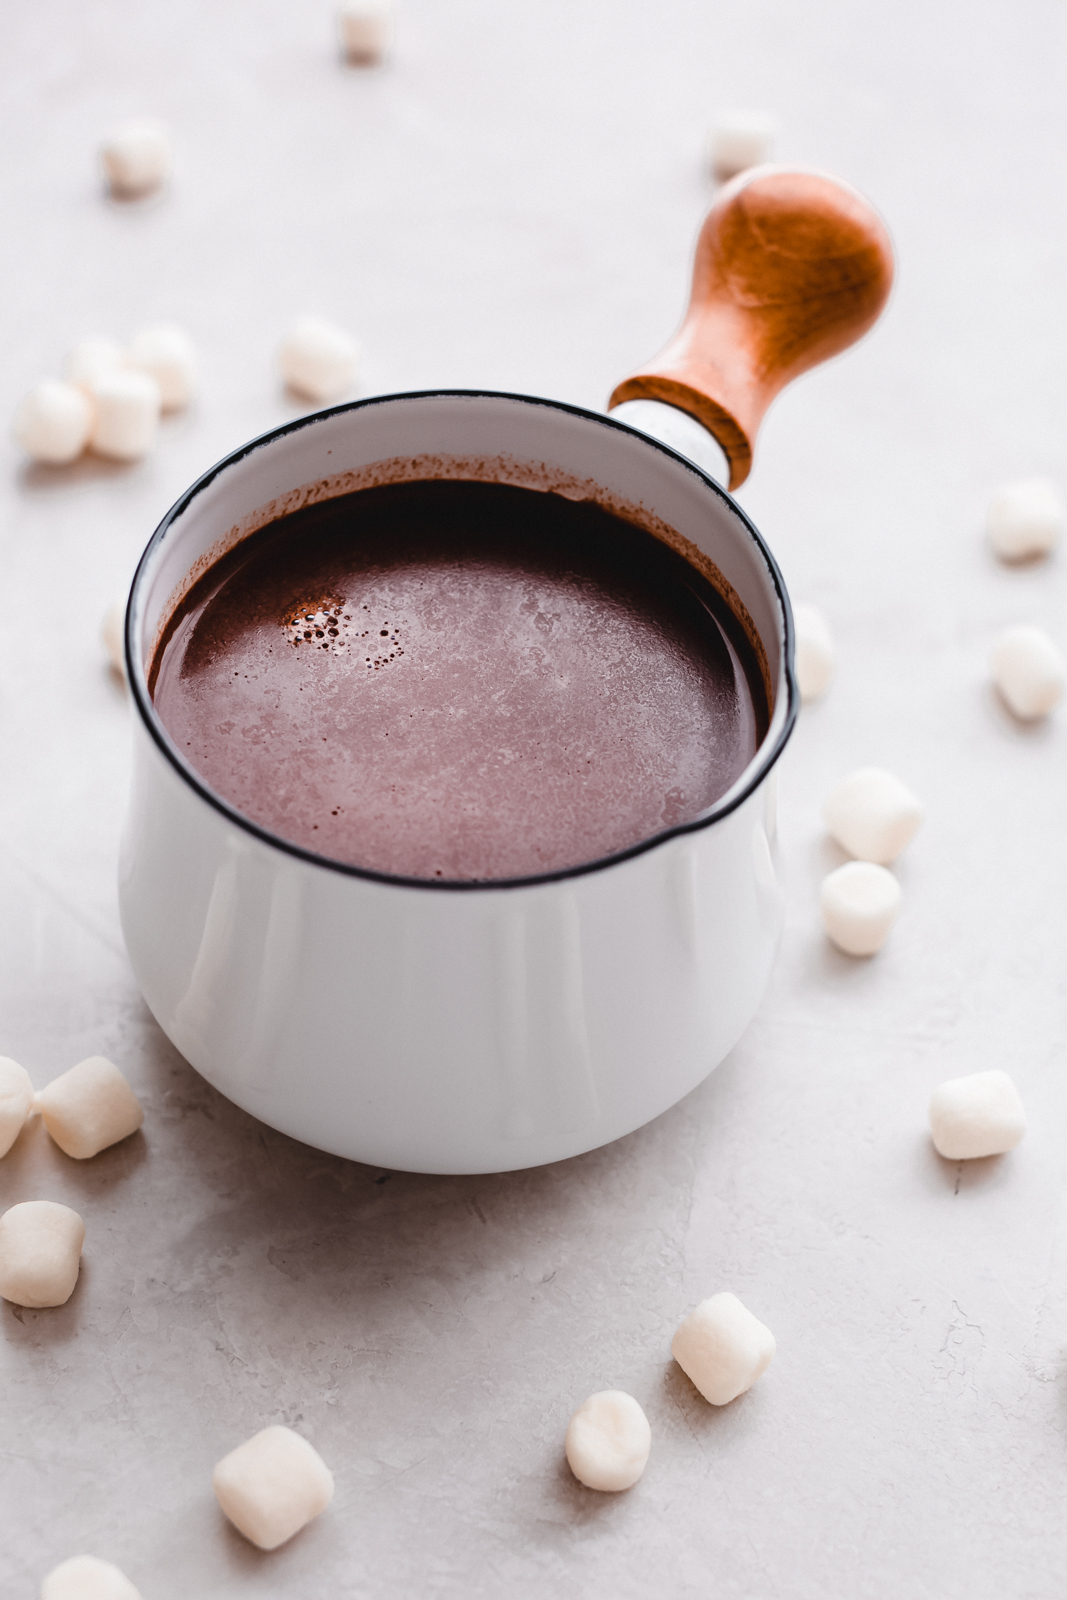 hot chocolate for two in a white saucepan with wooden handle